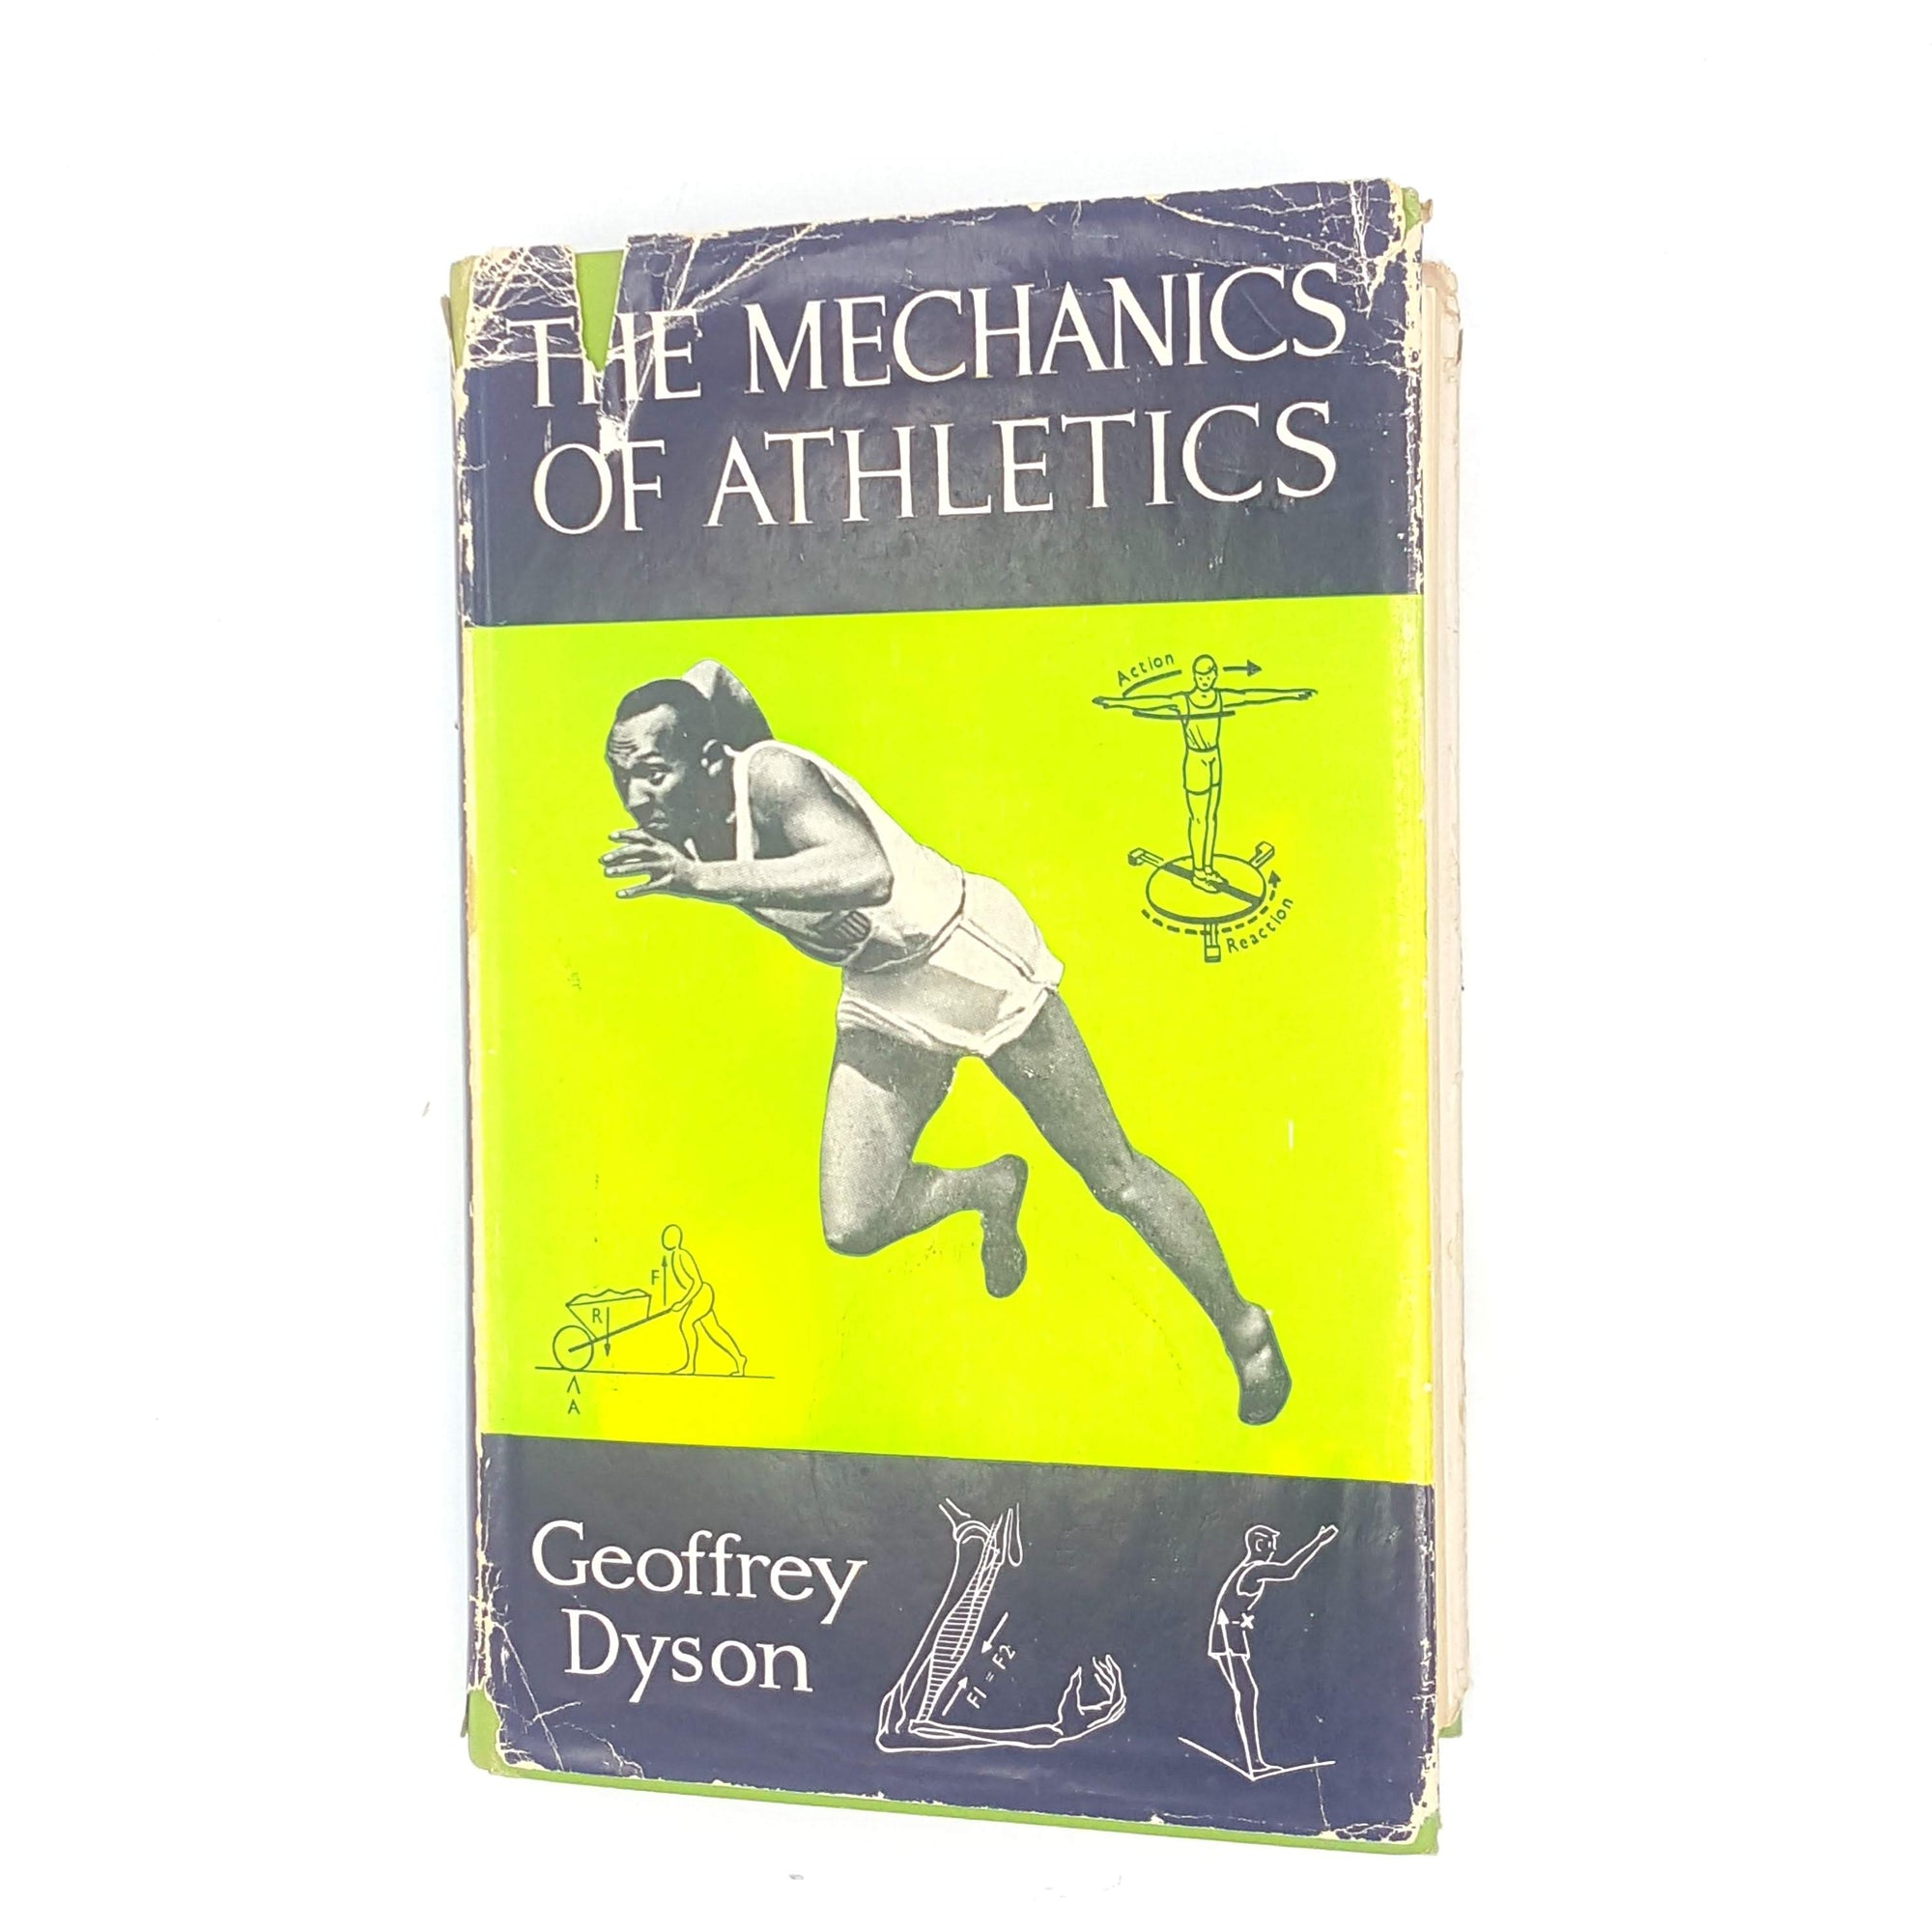 The Mechanics of Athletics by Geoffrey Dyson 1964